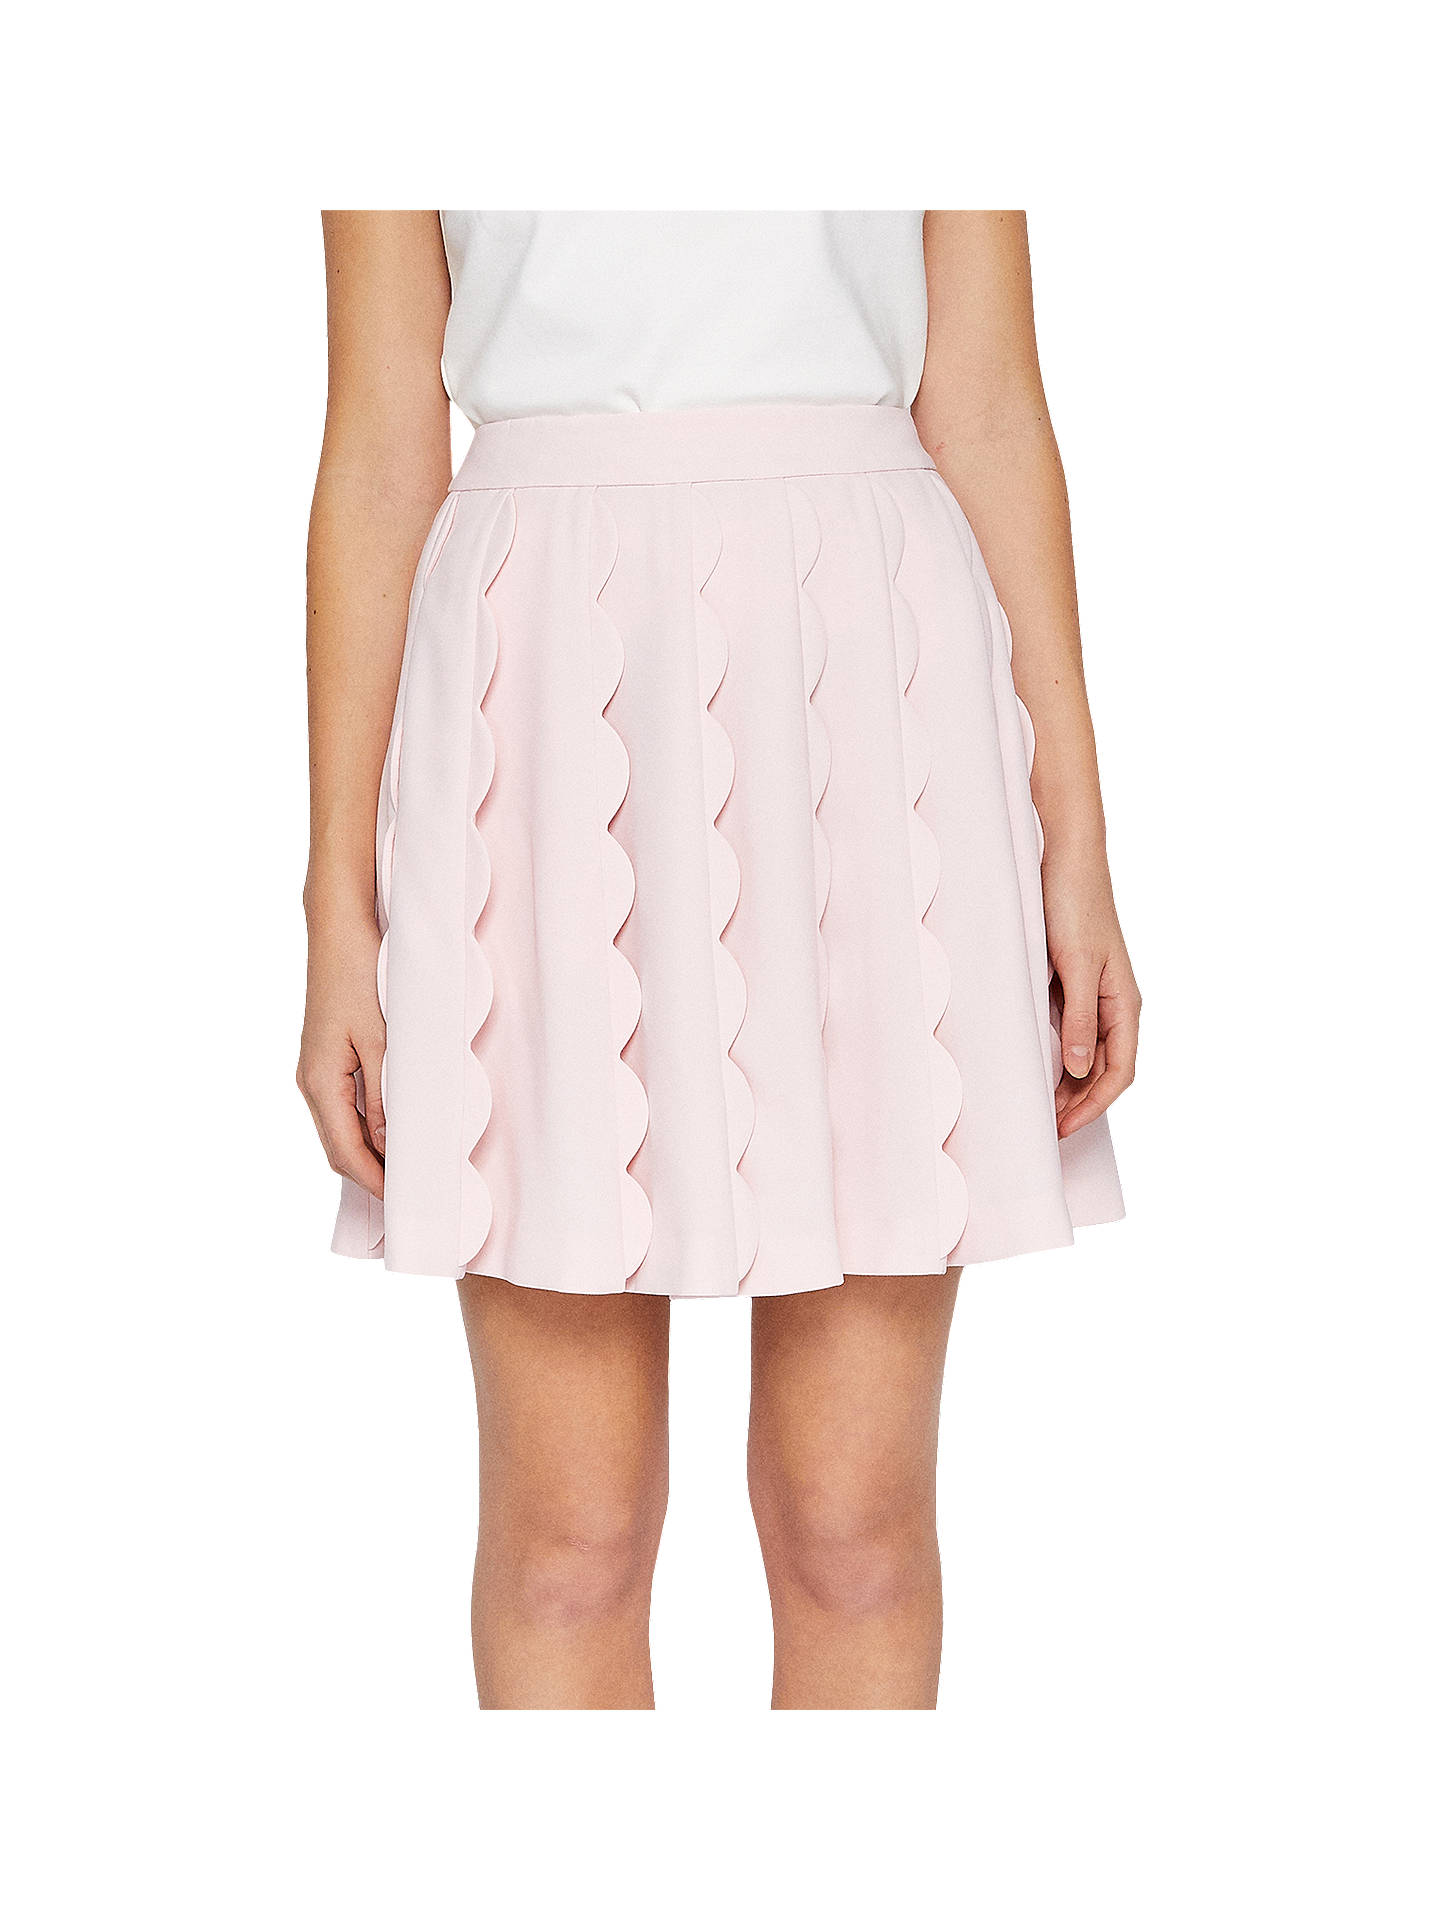 922c7ad7fe Buy Ted Baker Poppay Scallop Detail Mini Skirt, Baby Pink, 0 Online at  johnlewis ...